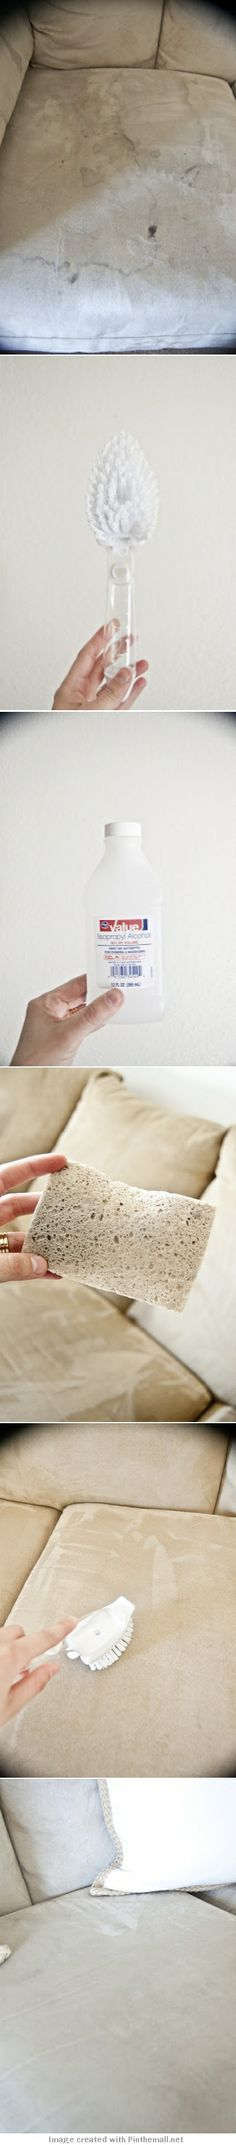 how to get pen stains out of suede couch